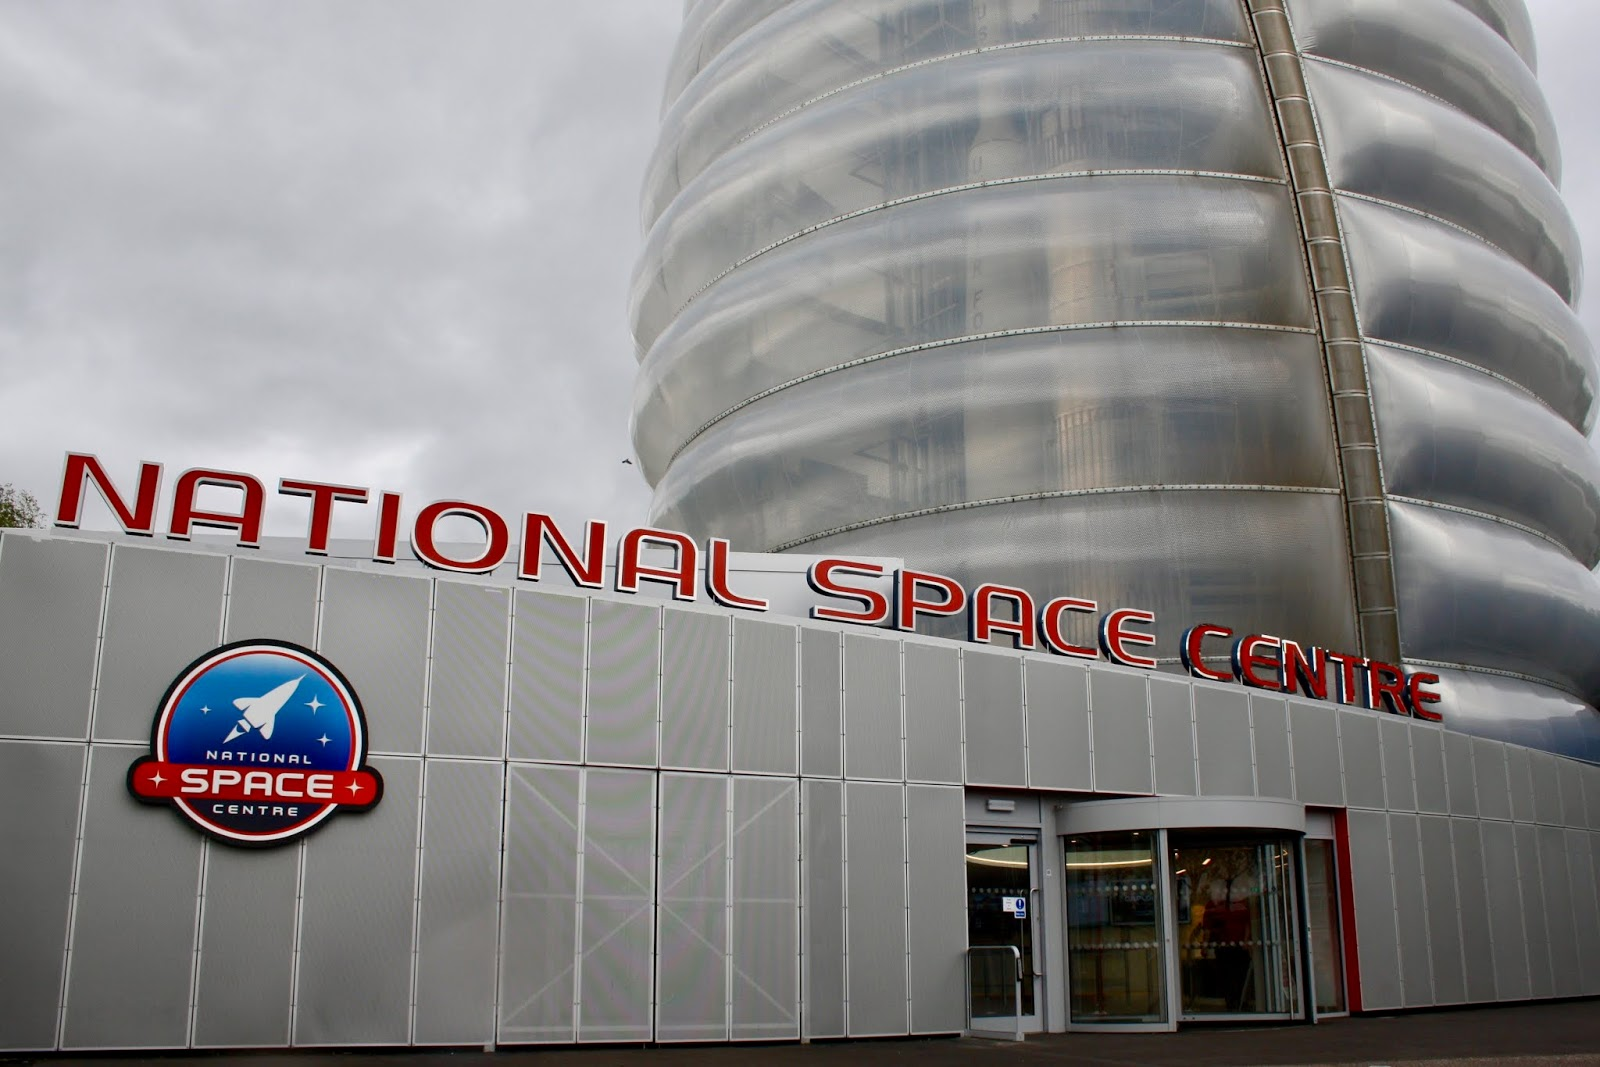 the exterior of the National Space Centre, Leicester